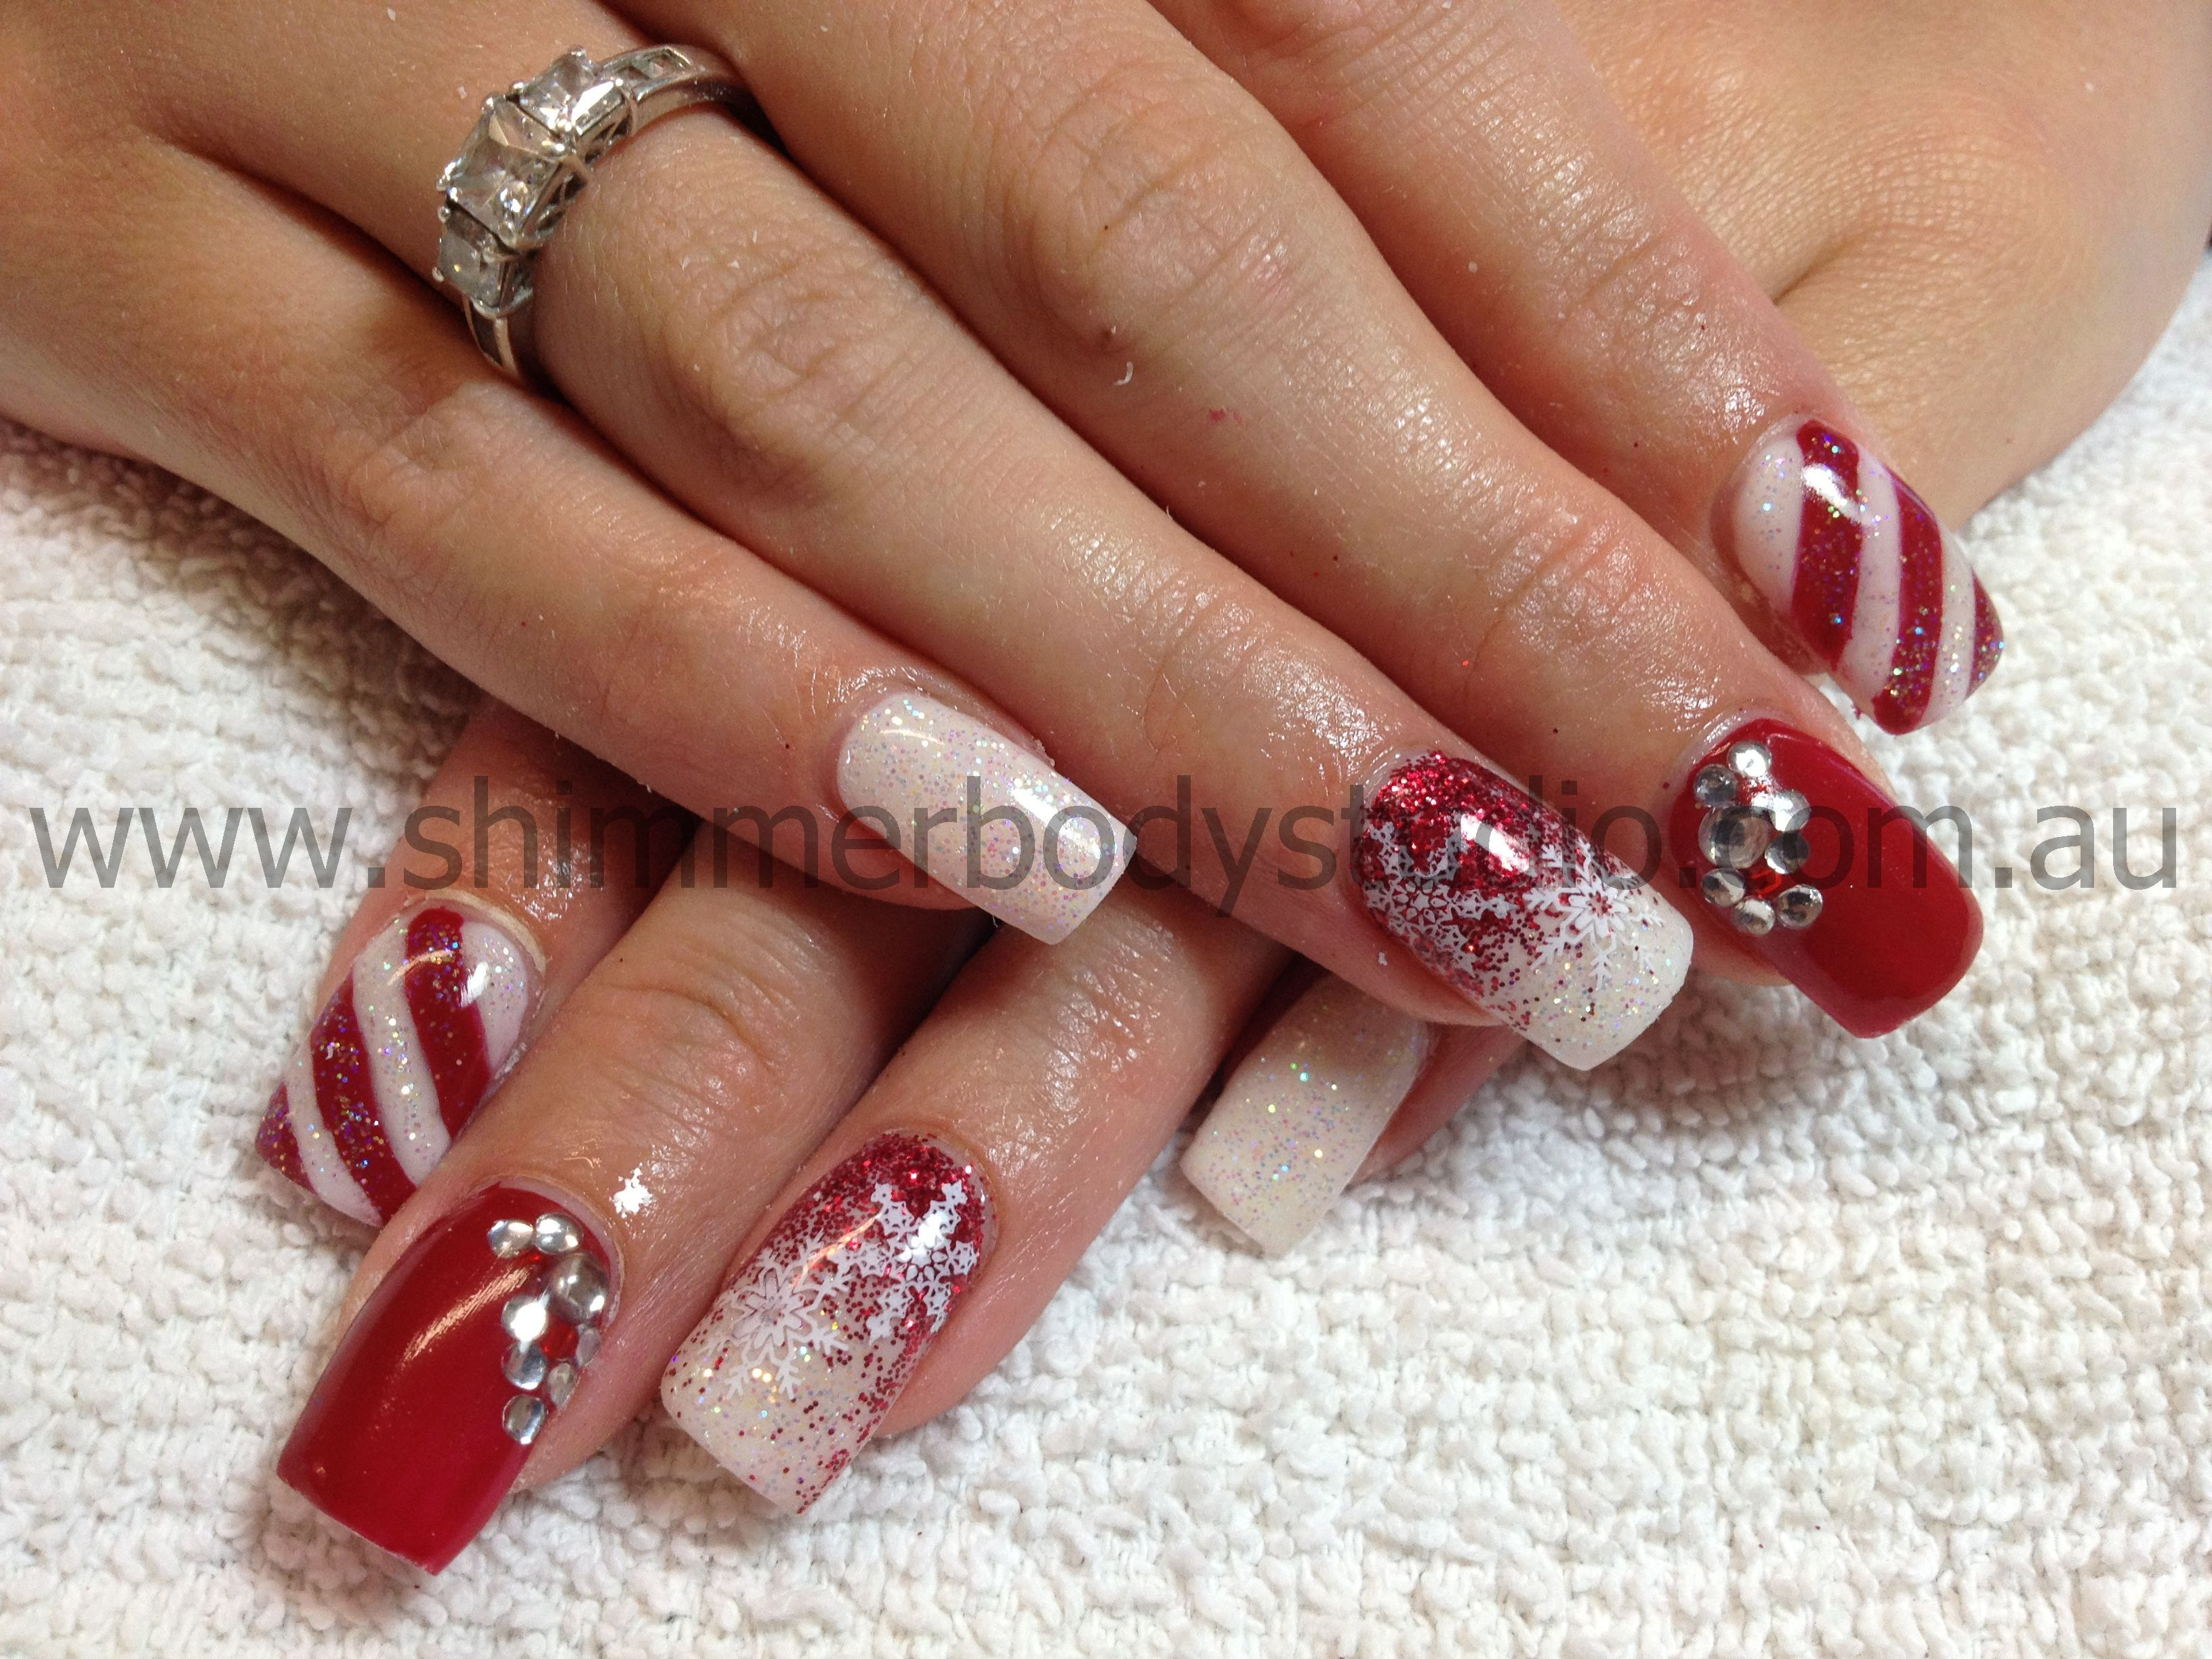 Gel nails, Christmas nails, red an white nails, glitter nails ...